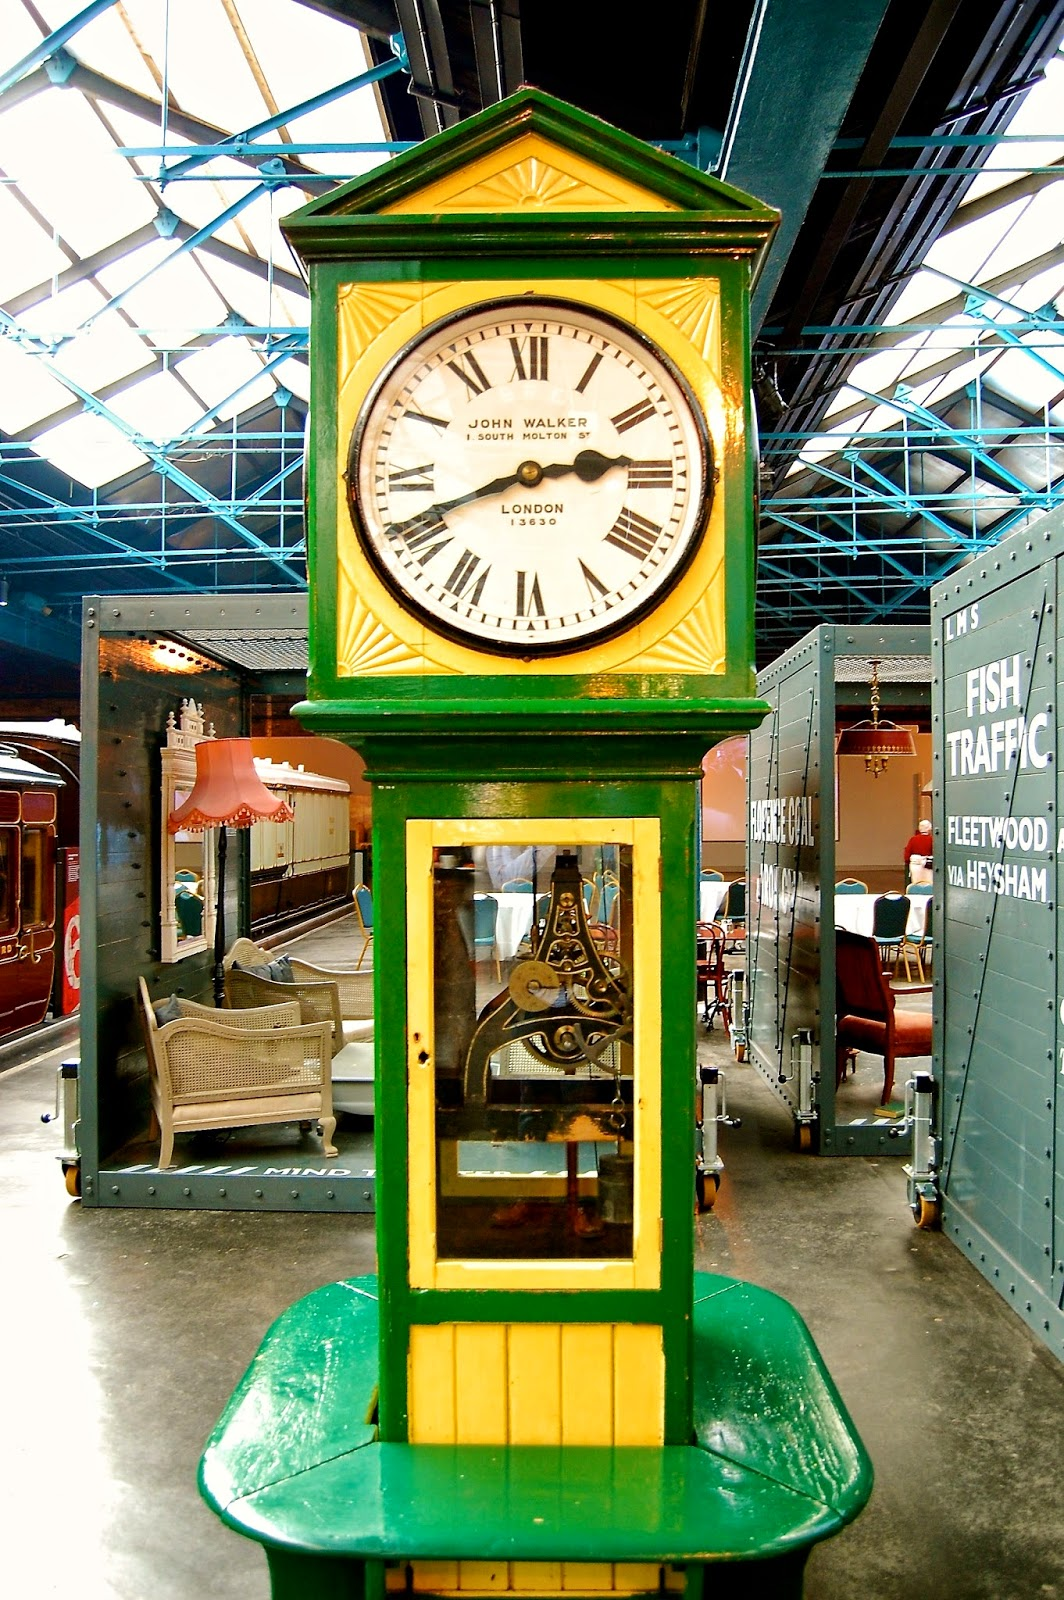 Railway station clock at the National Railway Museum in York